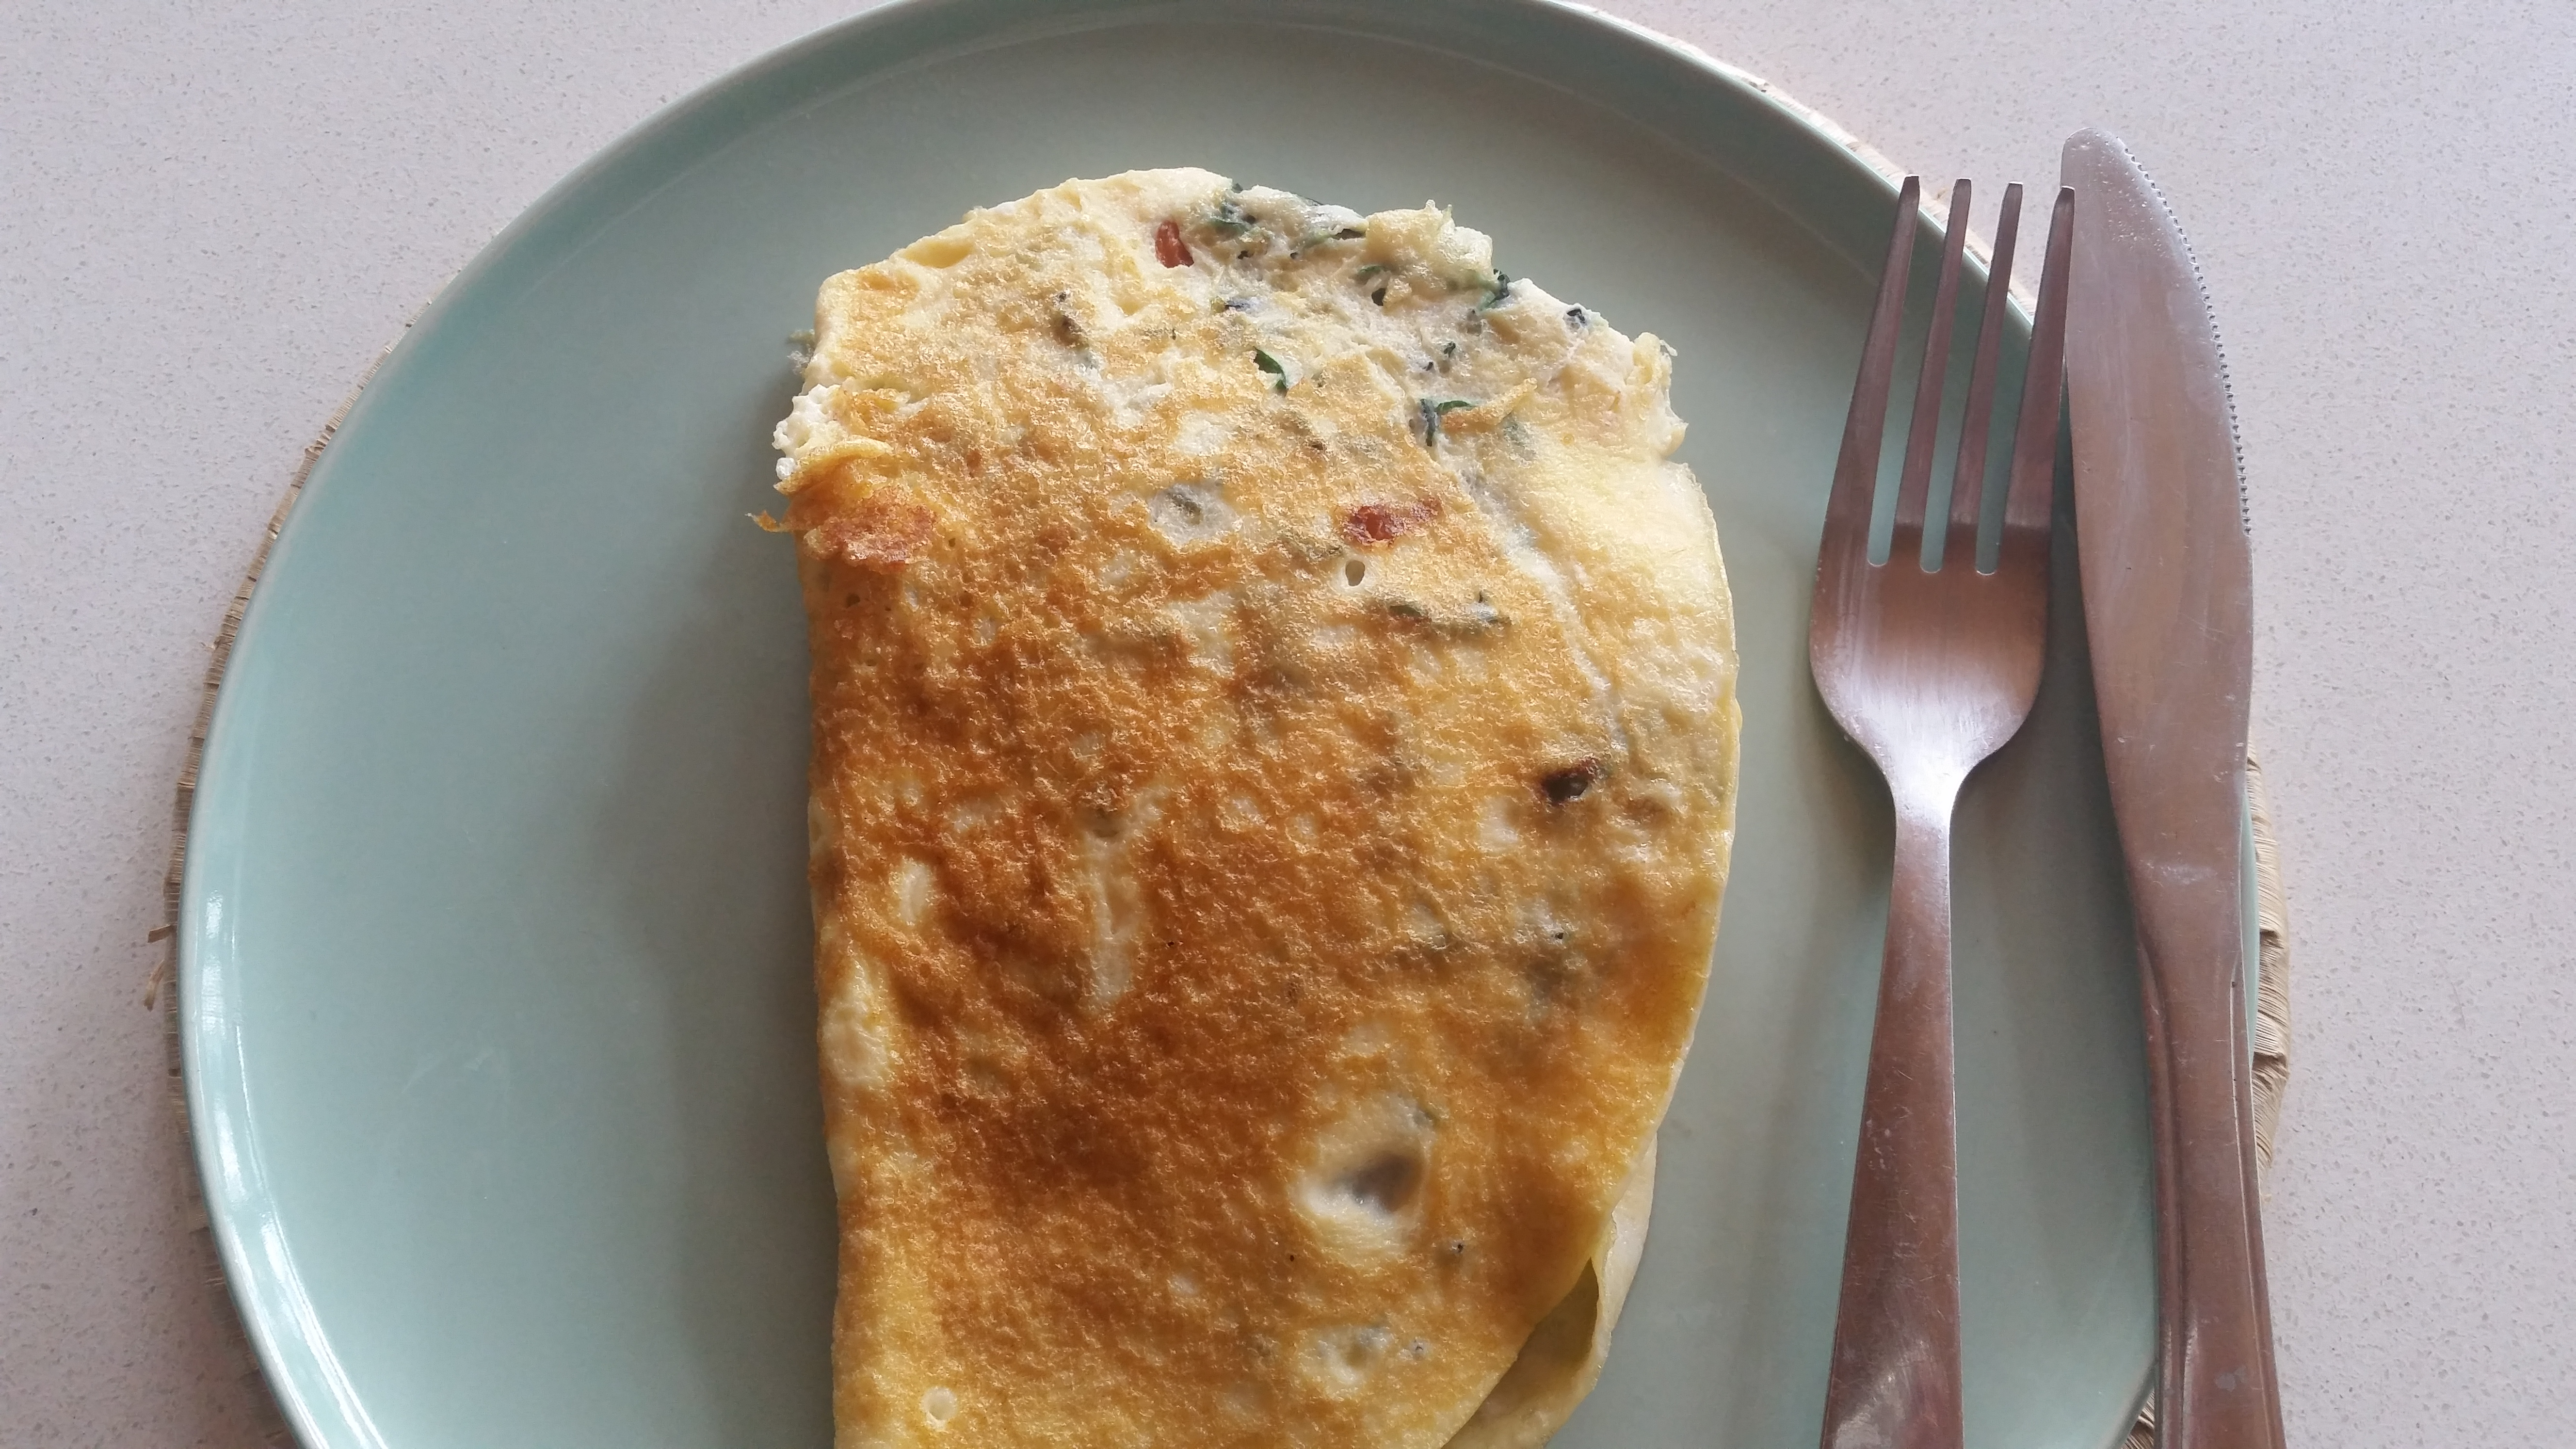 Red Kale and Tomato Omelette Low Carb Breakfast Perfect for Weight Loss